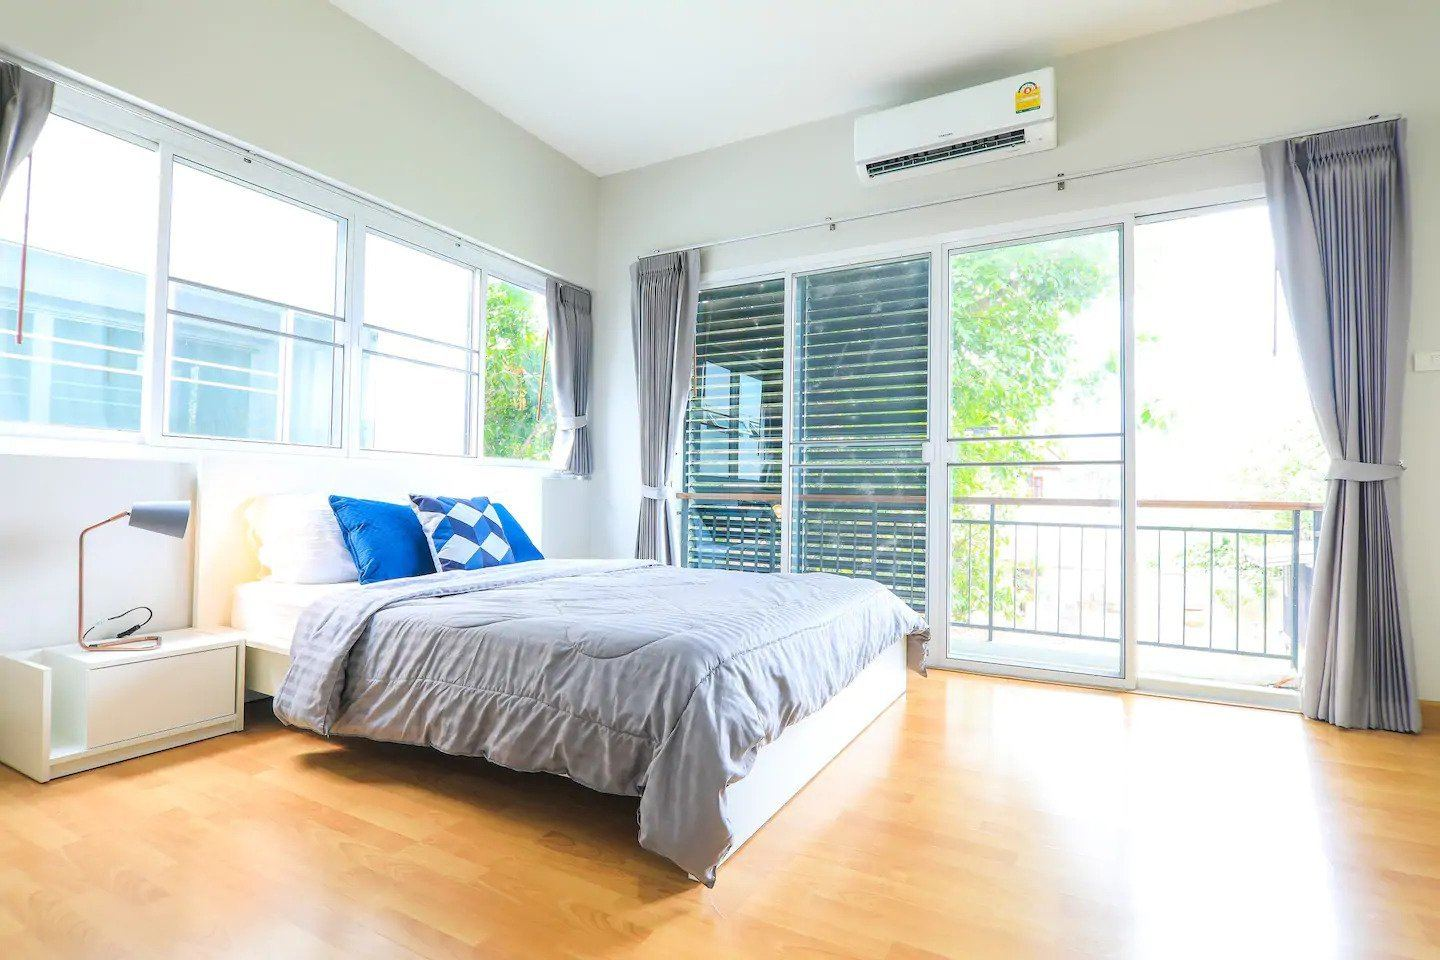 Thailand accommodation prices